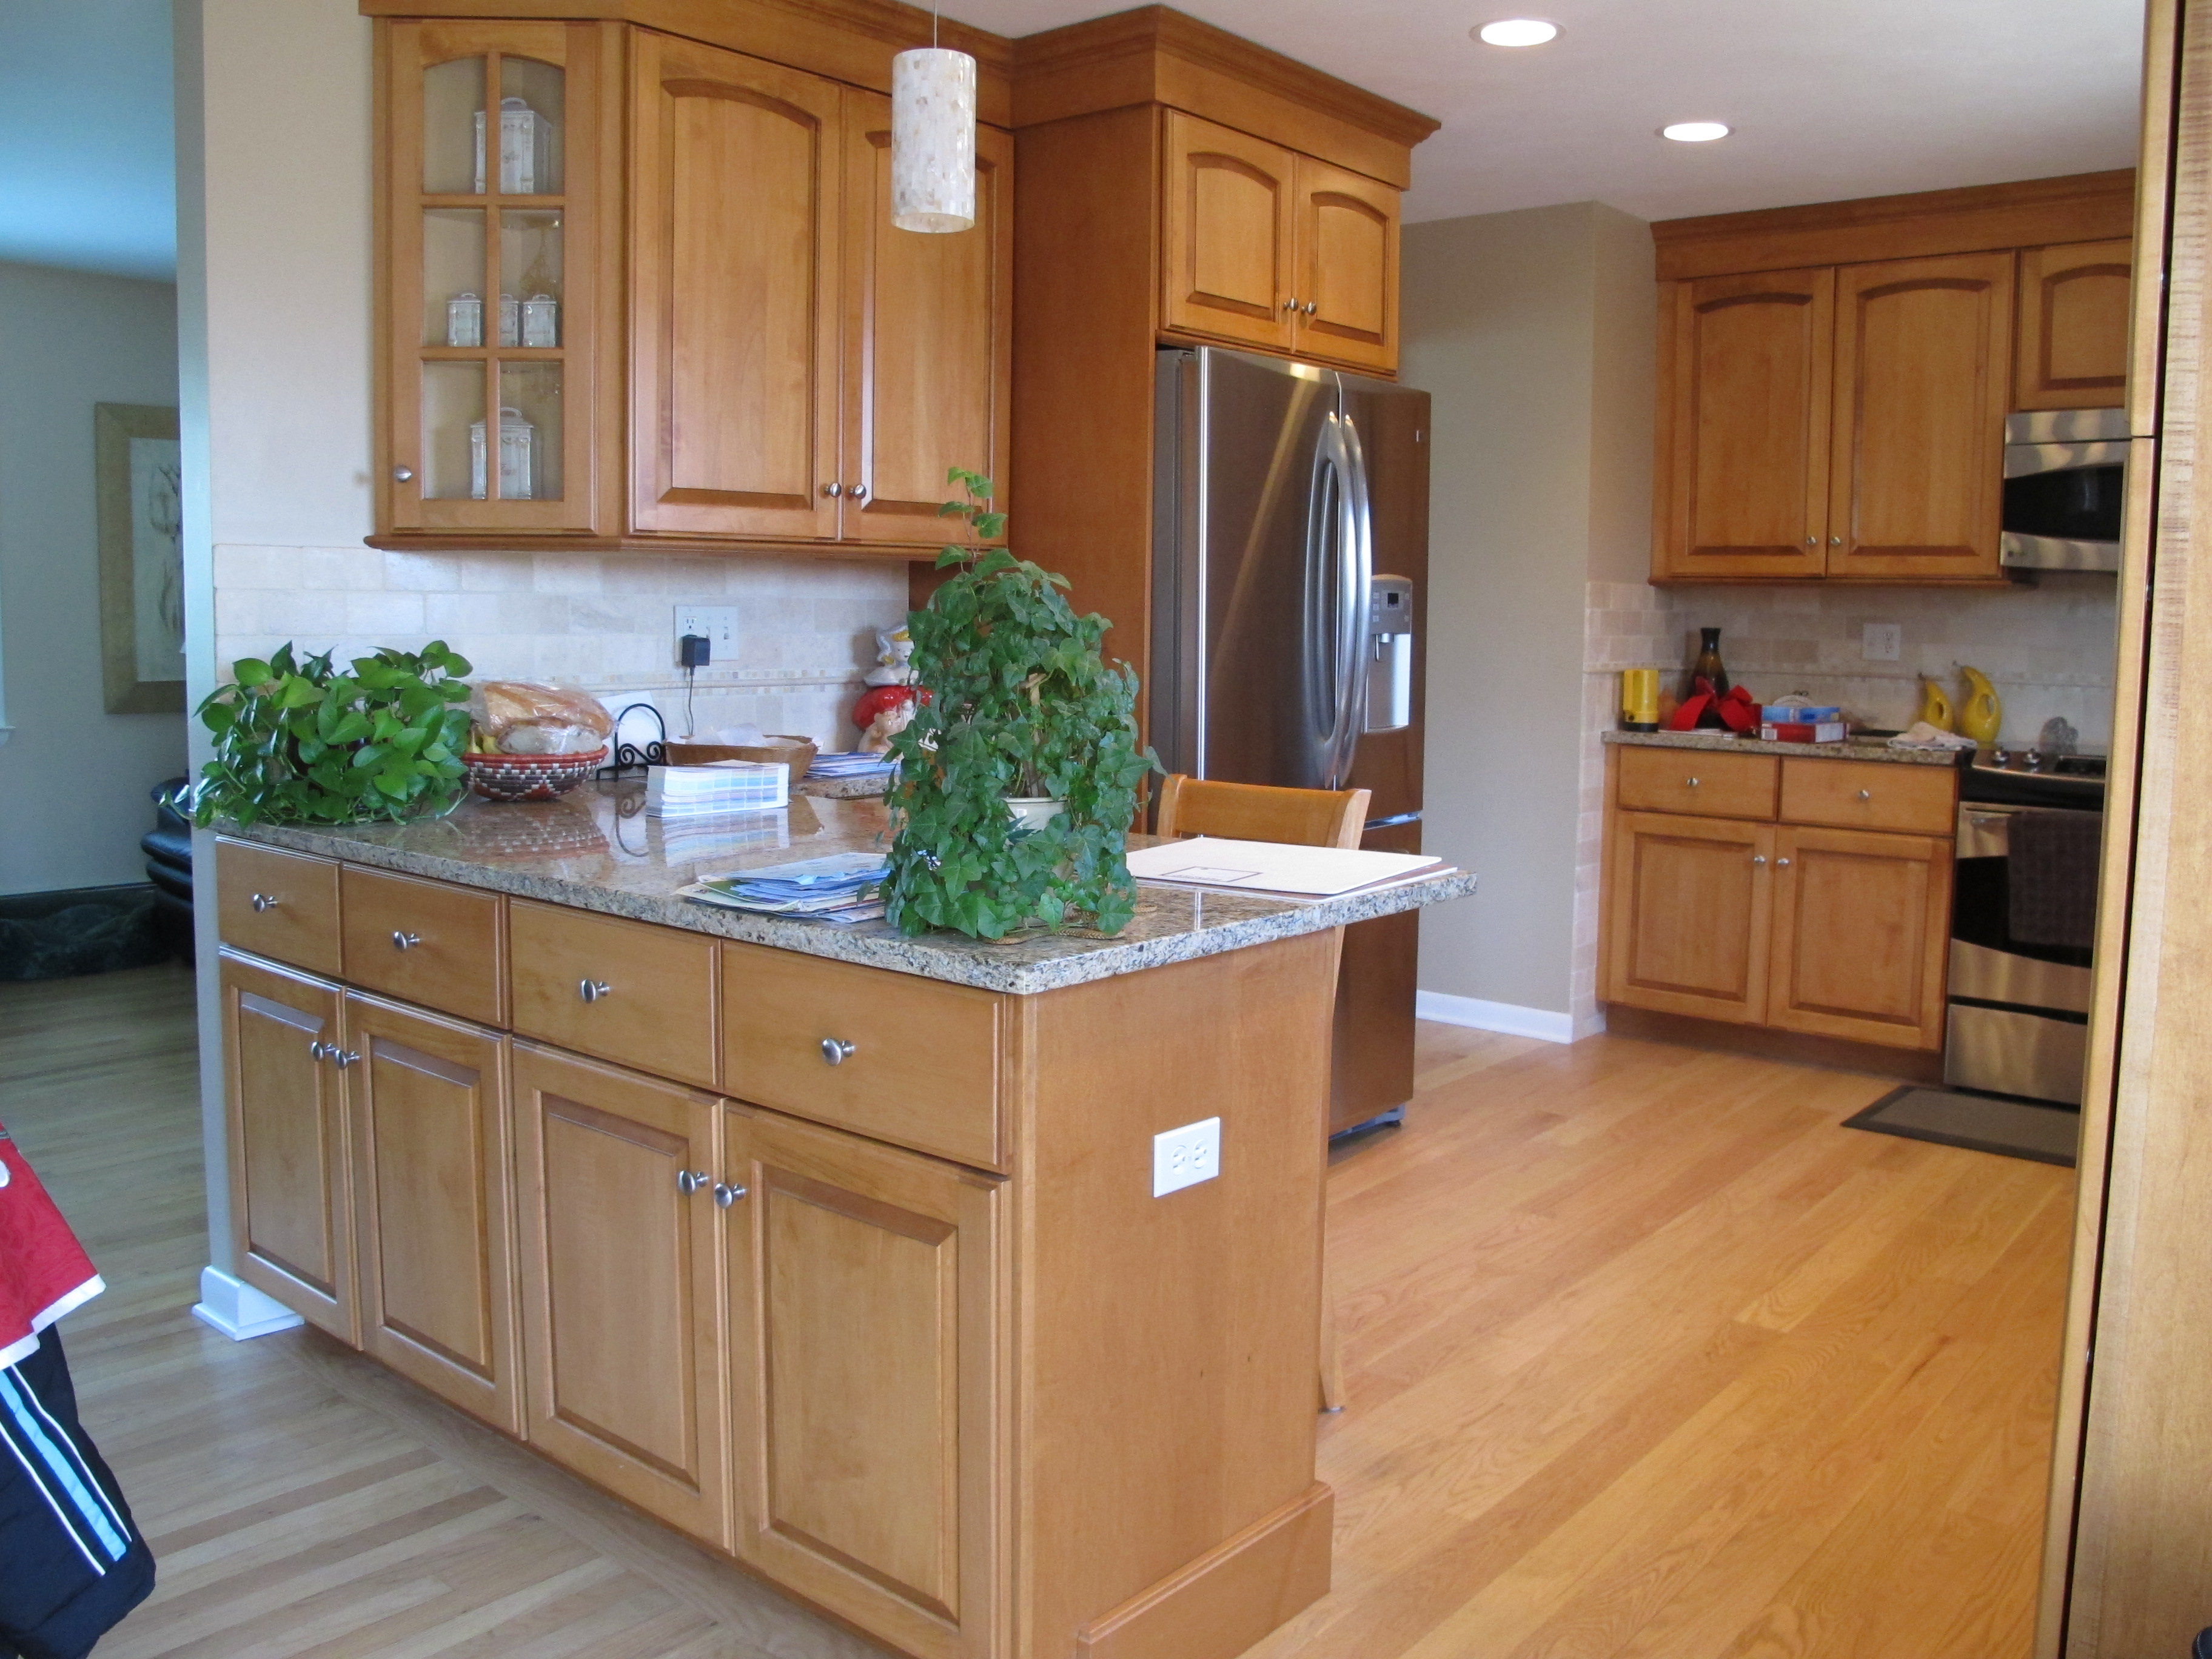 Kitchens – Cabinetry by Cilcourt